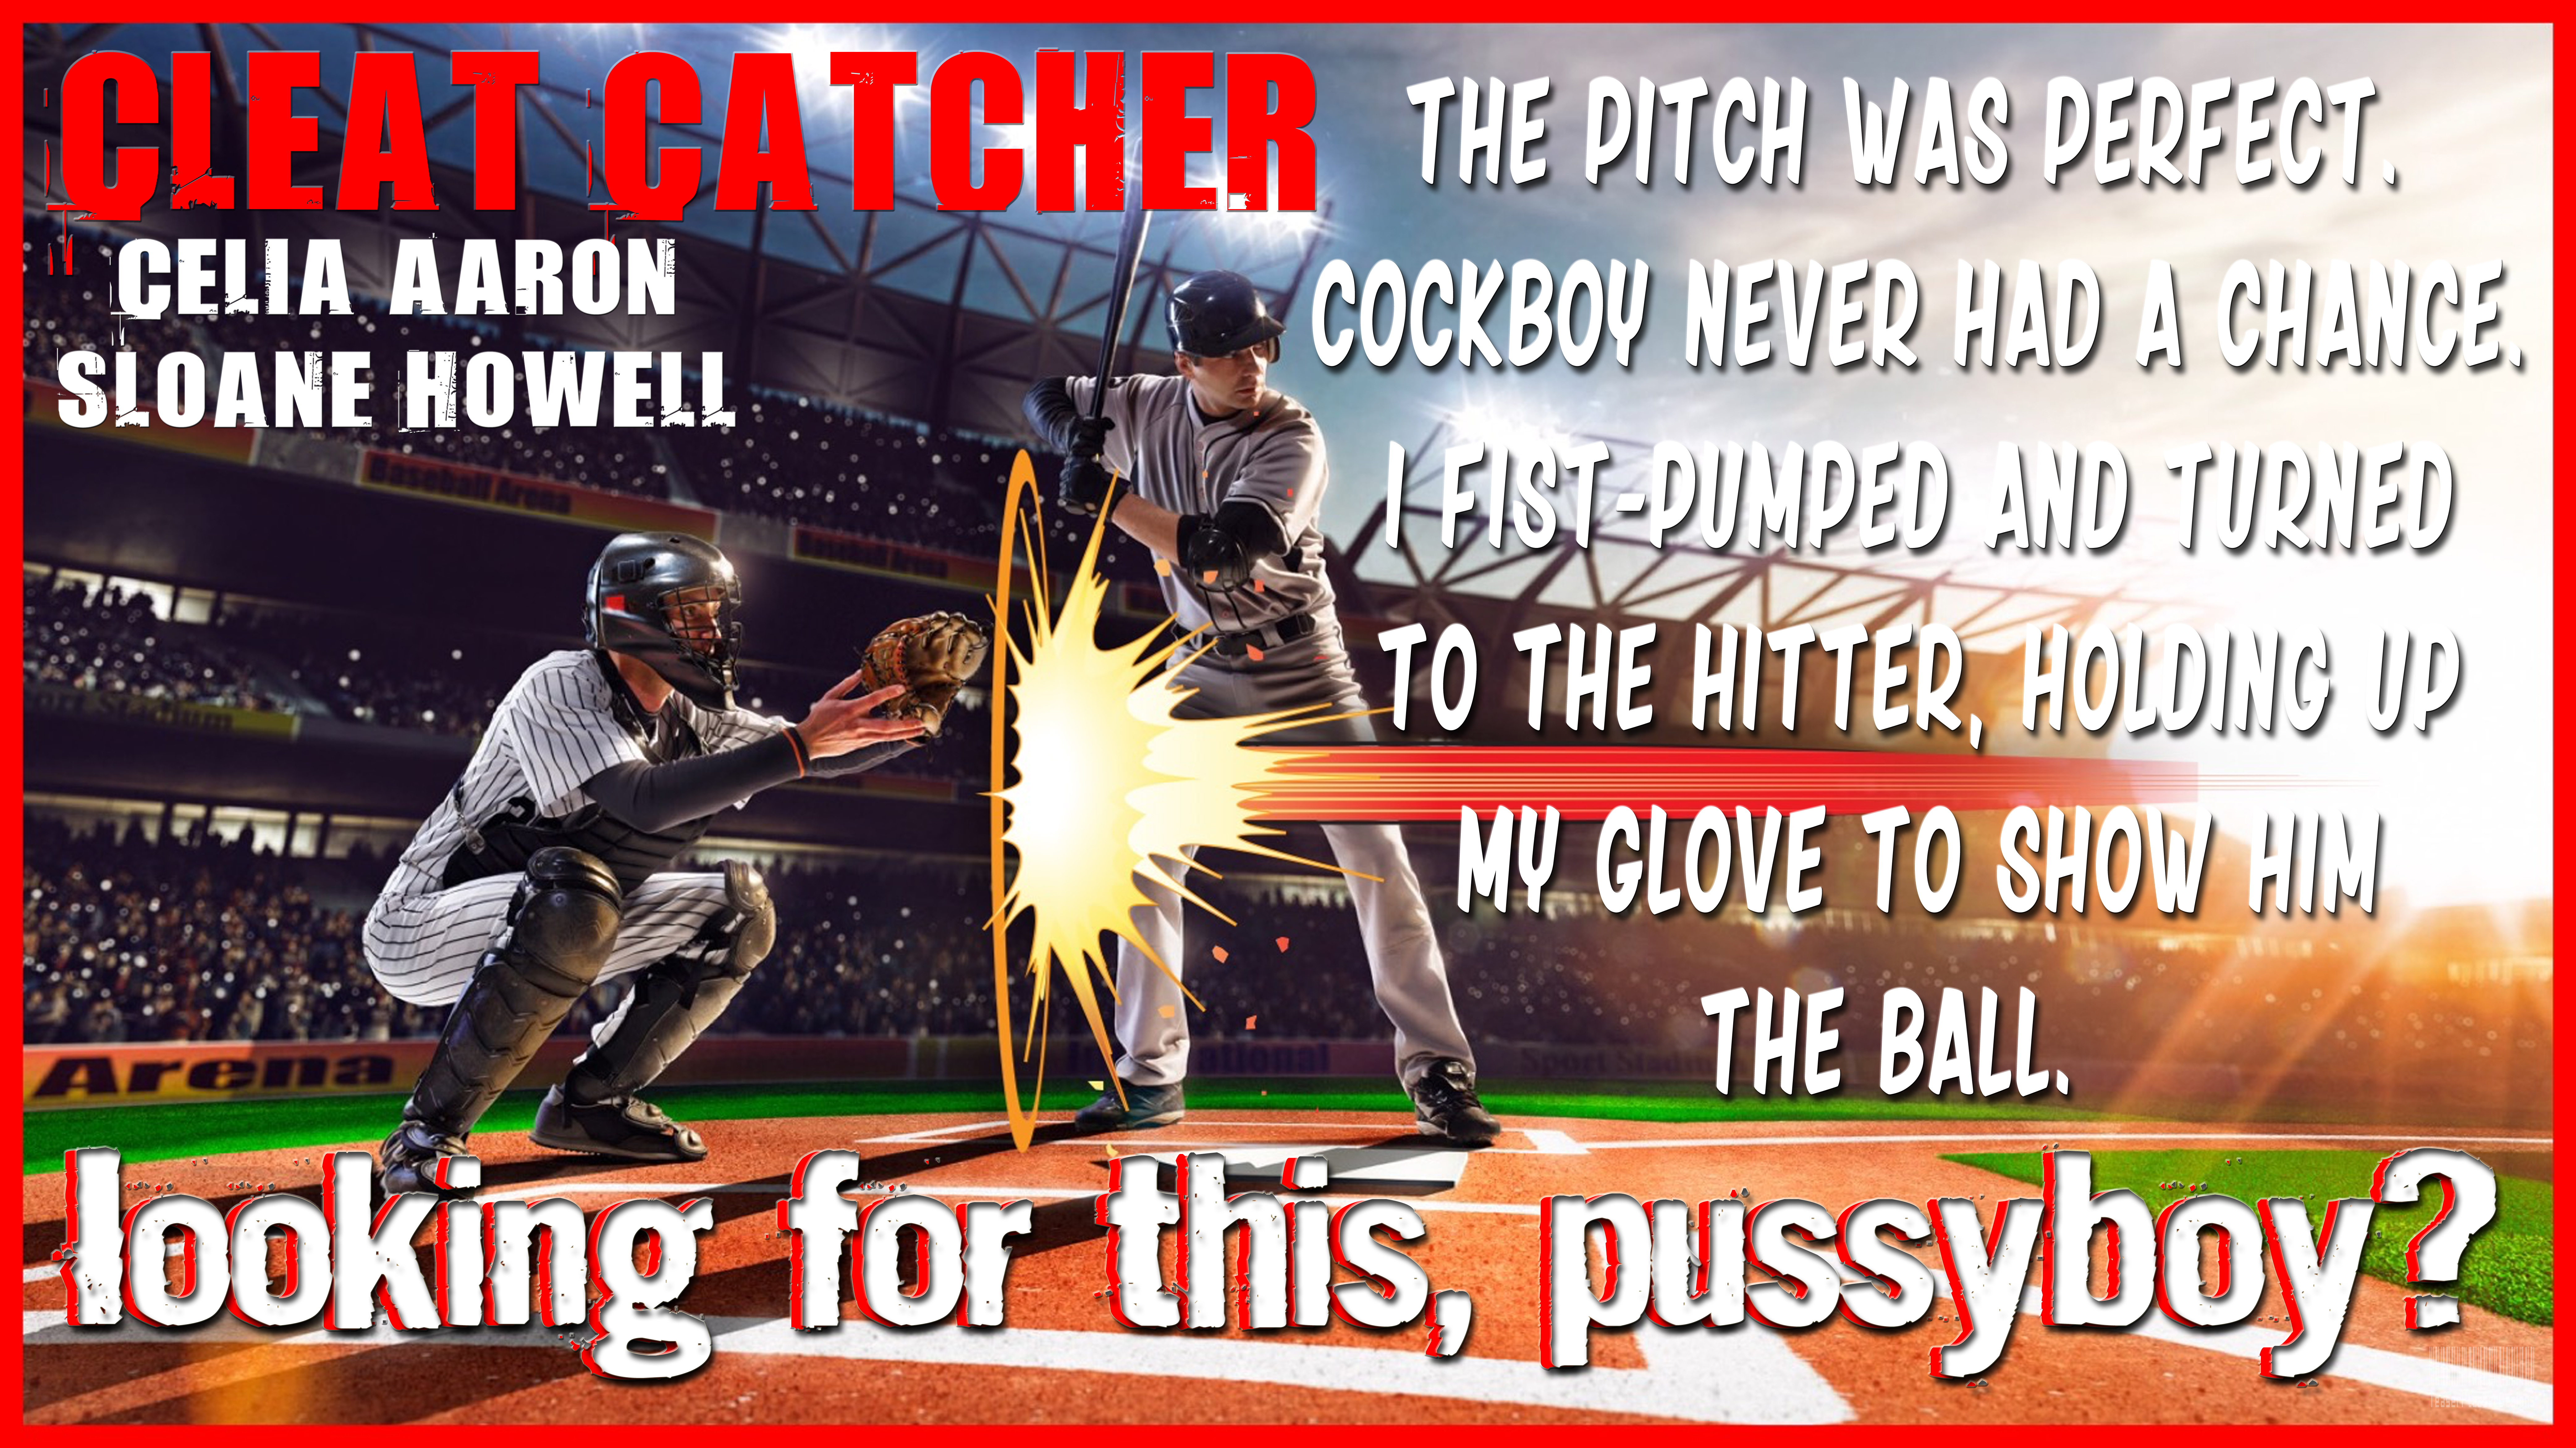 Cleat Catcher (C Aaron, S Howell)